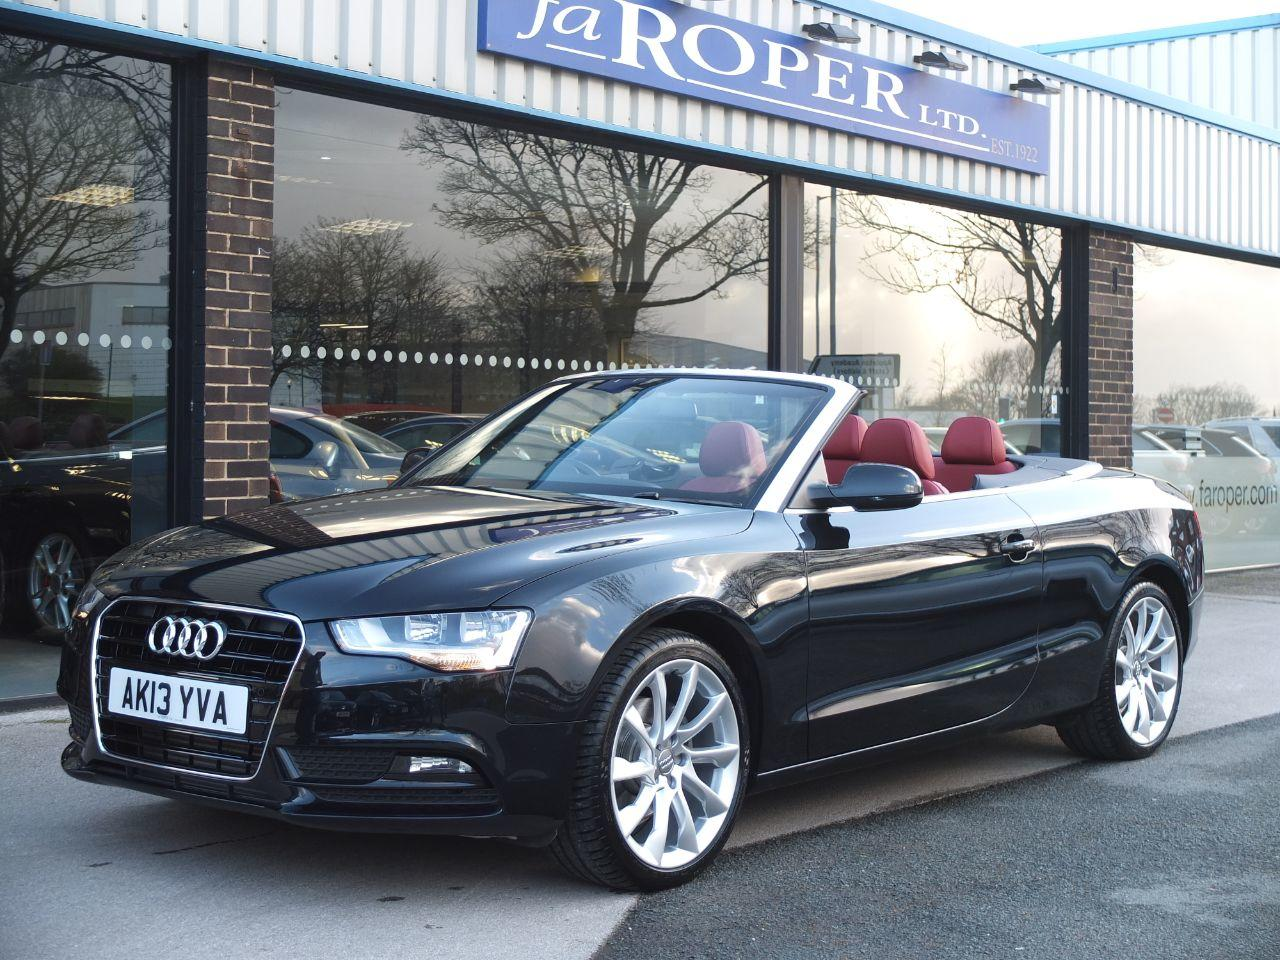 Audi A5 Cabriolet 1.8 TFSI SE Multitronic 170 ps +++Spec Convertible Petrol Phantom Black PearlAudi A5 Cabriolet 1.8 TFSI SE Multitronic 170 ps +++Spec Convertible Petrol Phantom Black Pearl at fa Roper Ltd Bradford